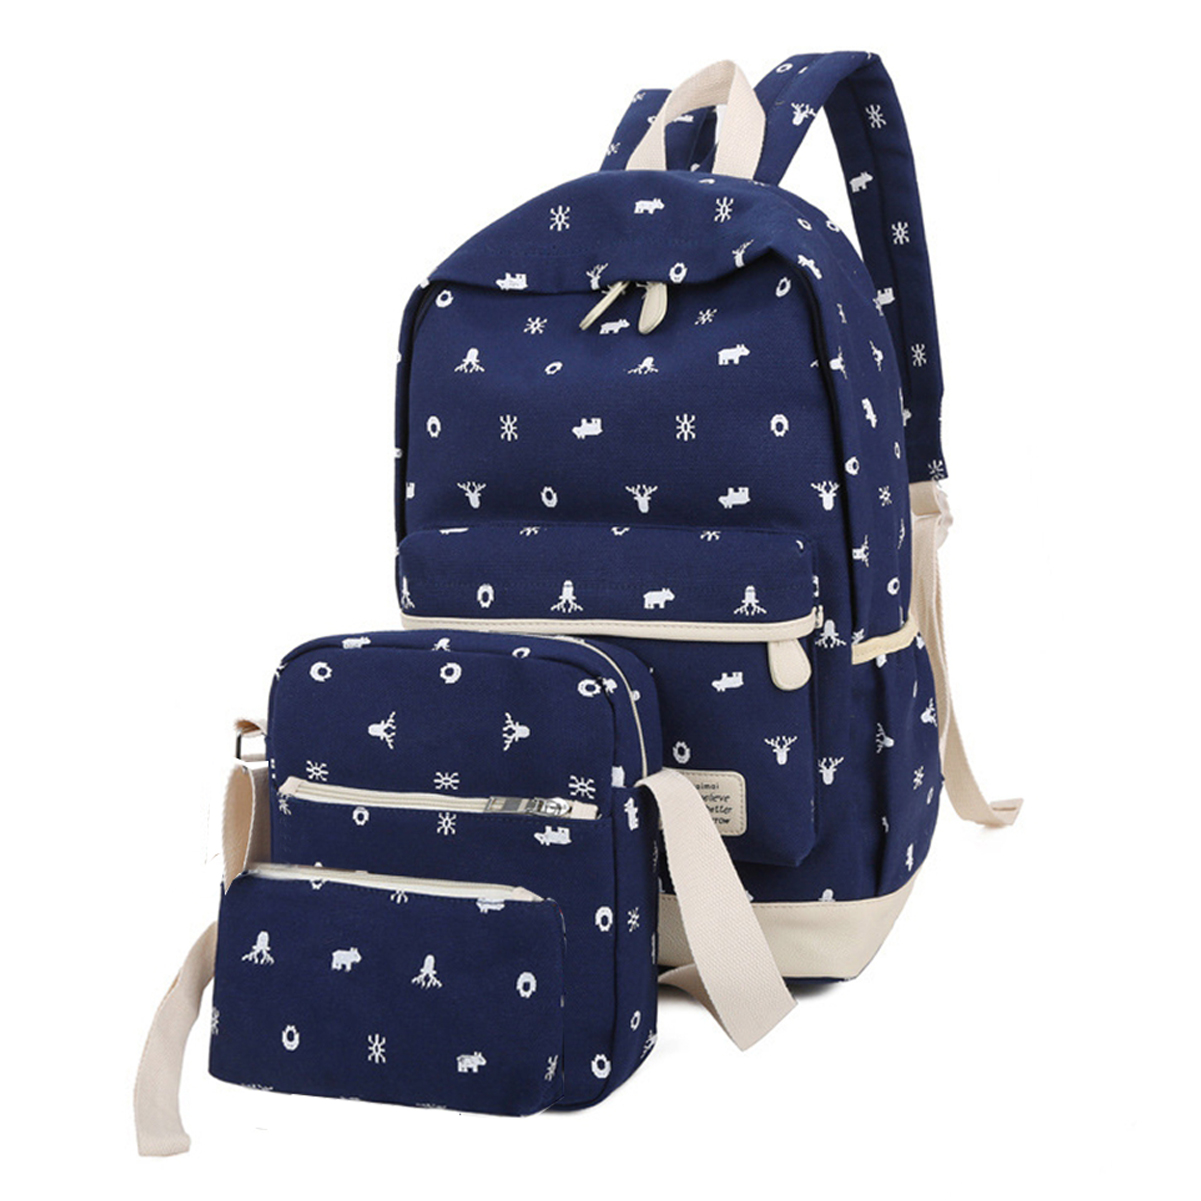 Casual Lightweight Canvas Wallet/Shoulder Bag/School Backpack Printed Bags Set